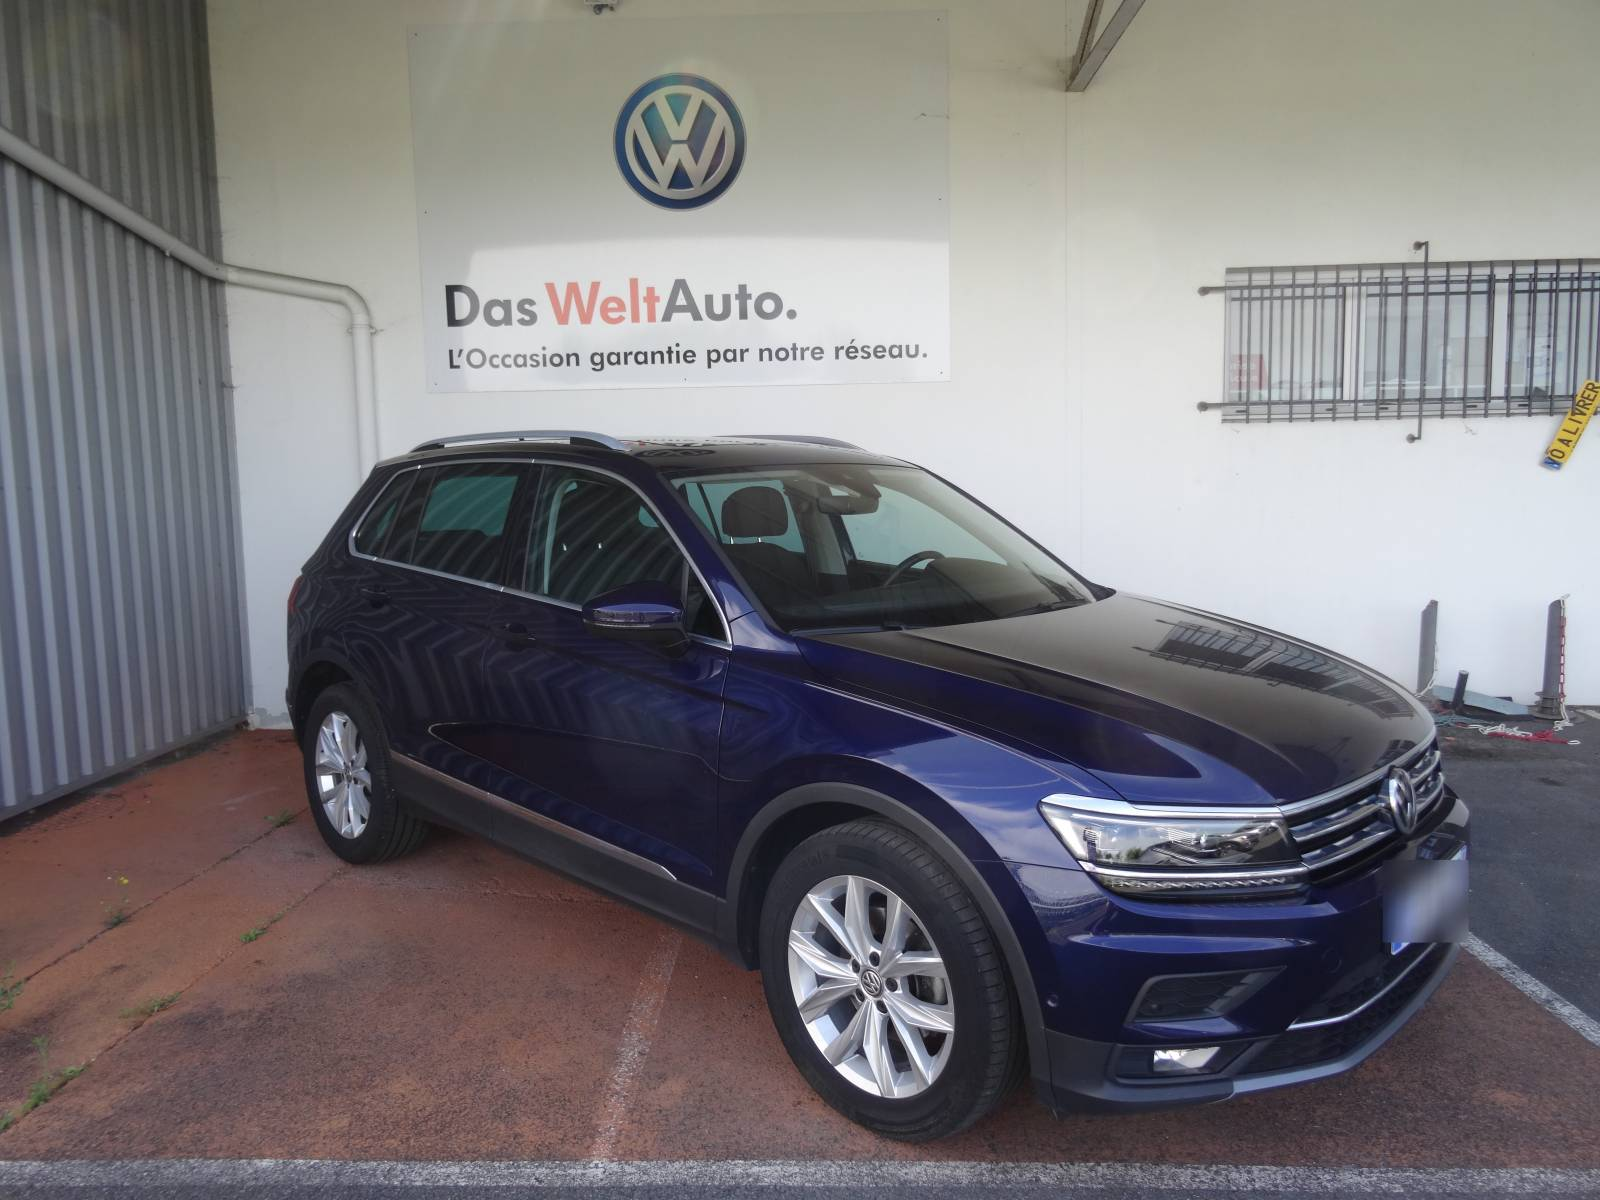 VOLKSWAGEN Tiguan 2.0 TDI 150 DSG7 - véhicule d'occasion - Site Internet Faurie - Volkswagen - Faurie Axess Sud Ouest Dax - 40180 - Narrosse - 1